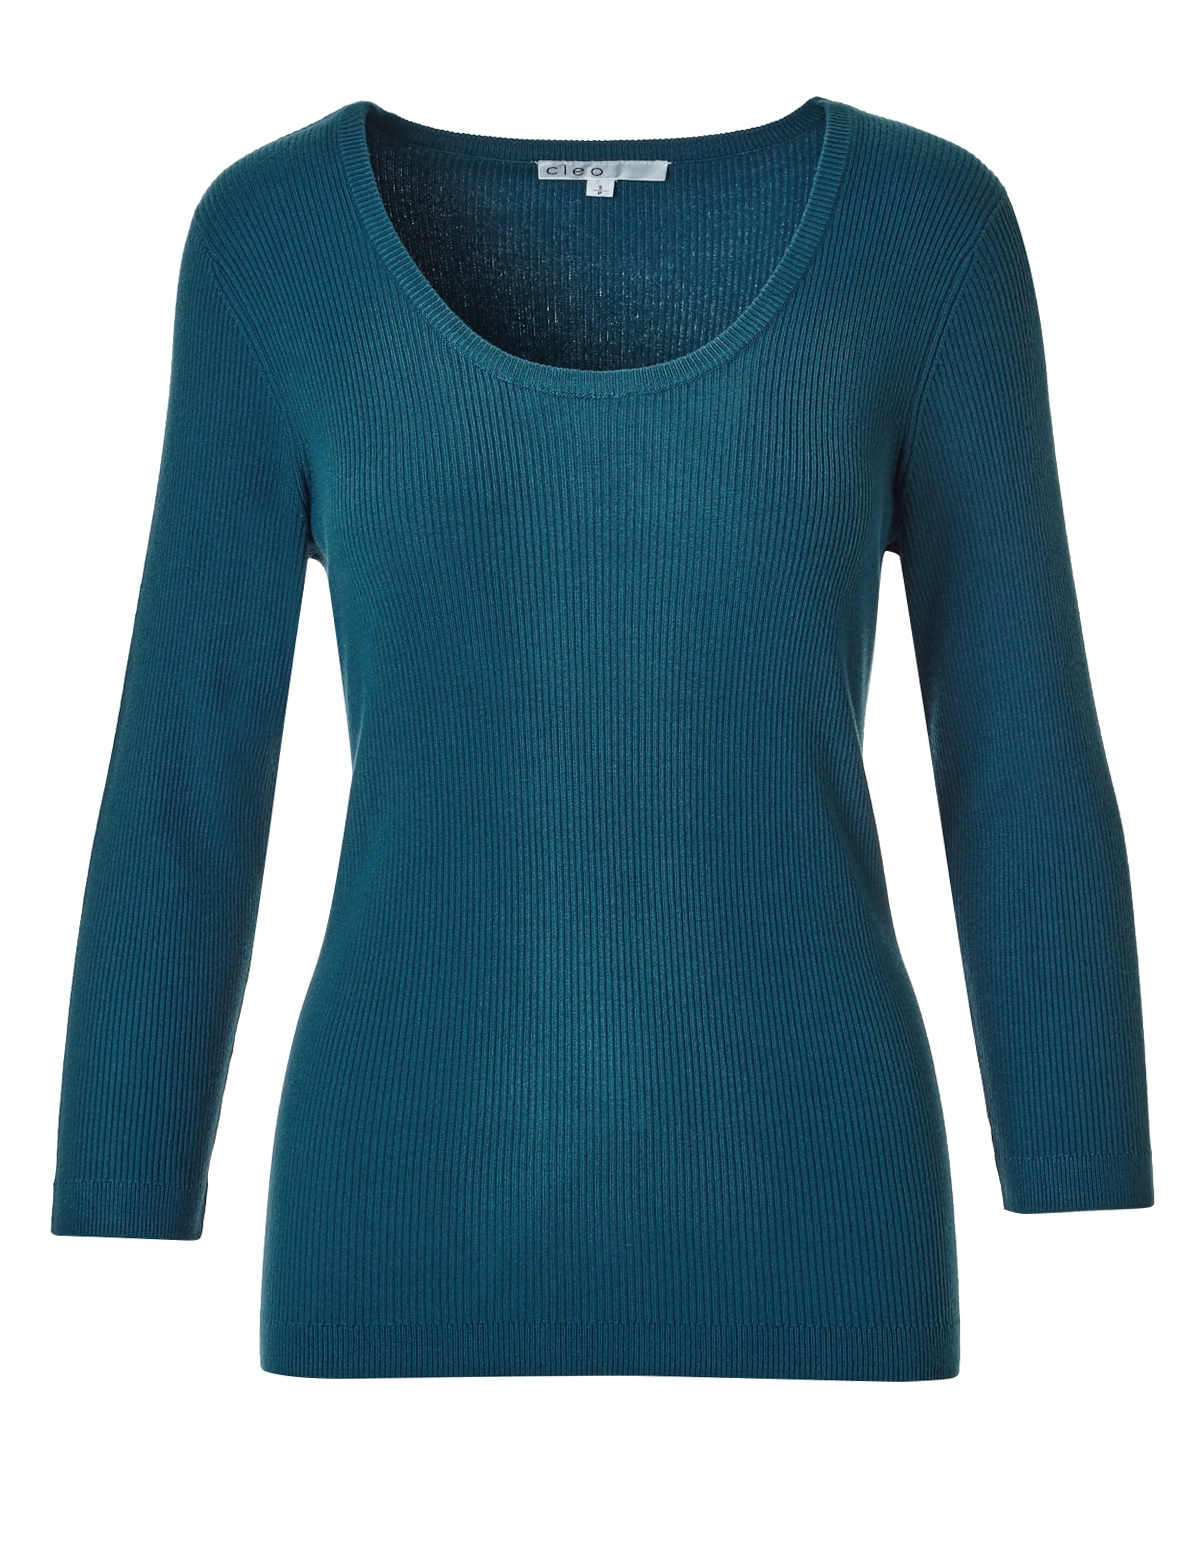 Turquoise Ribbed Pullover Sweater | Cleo